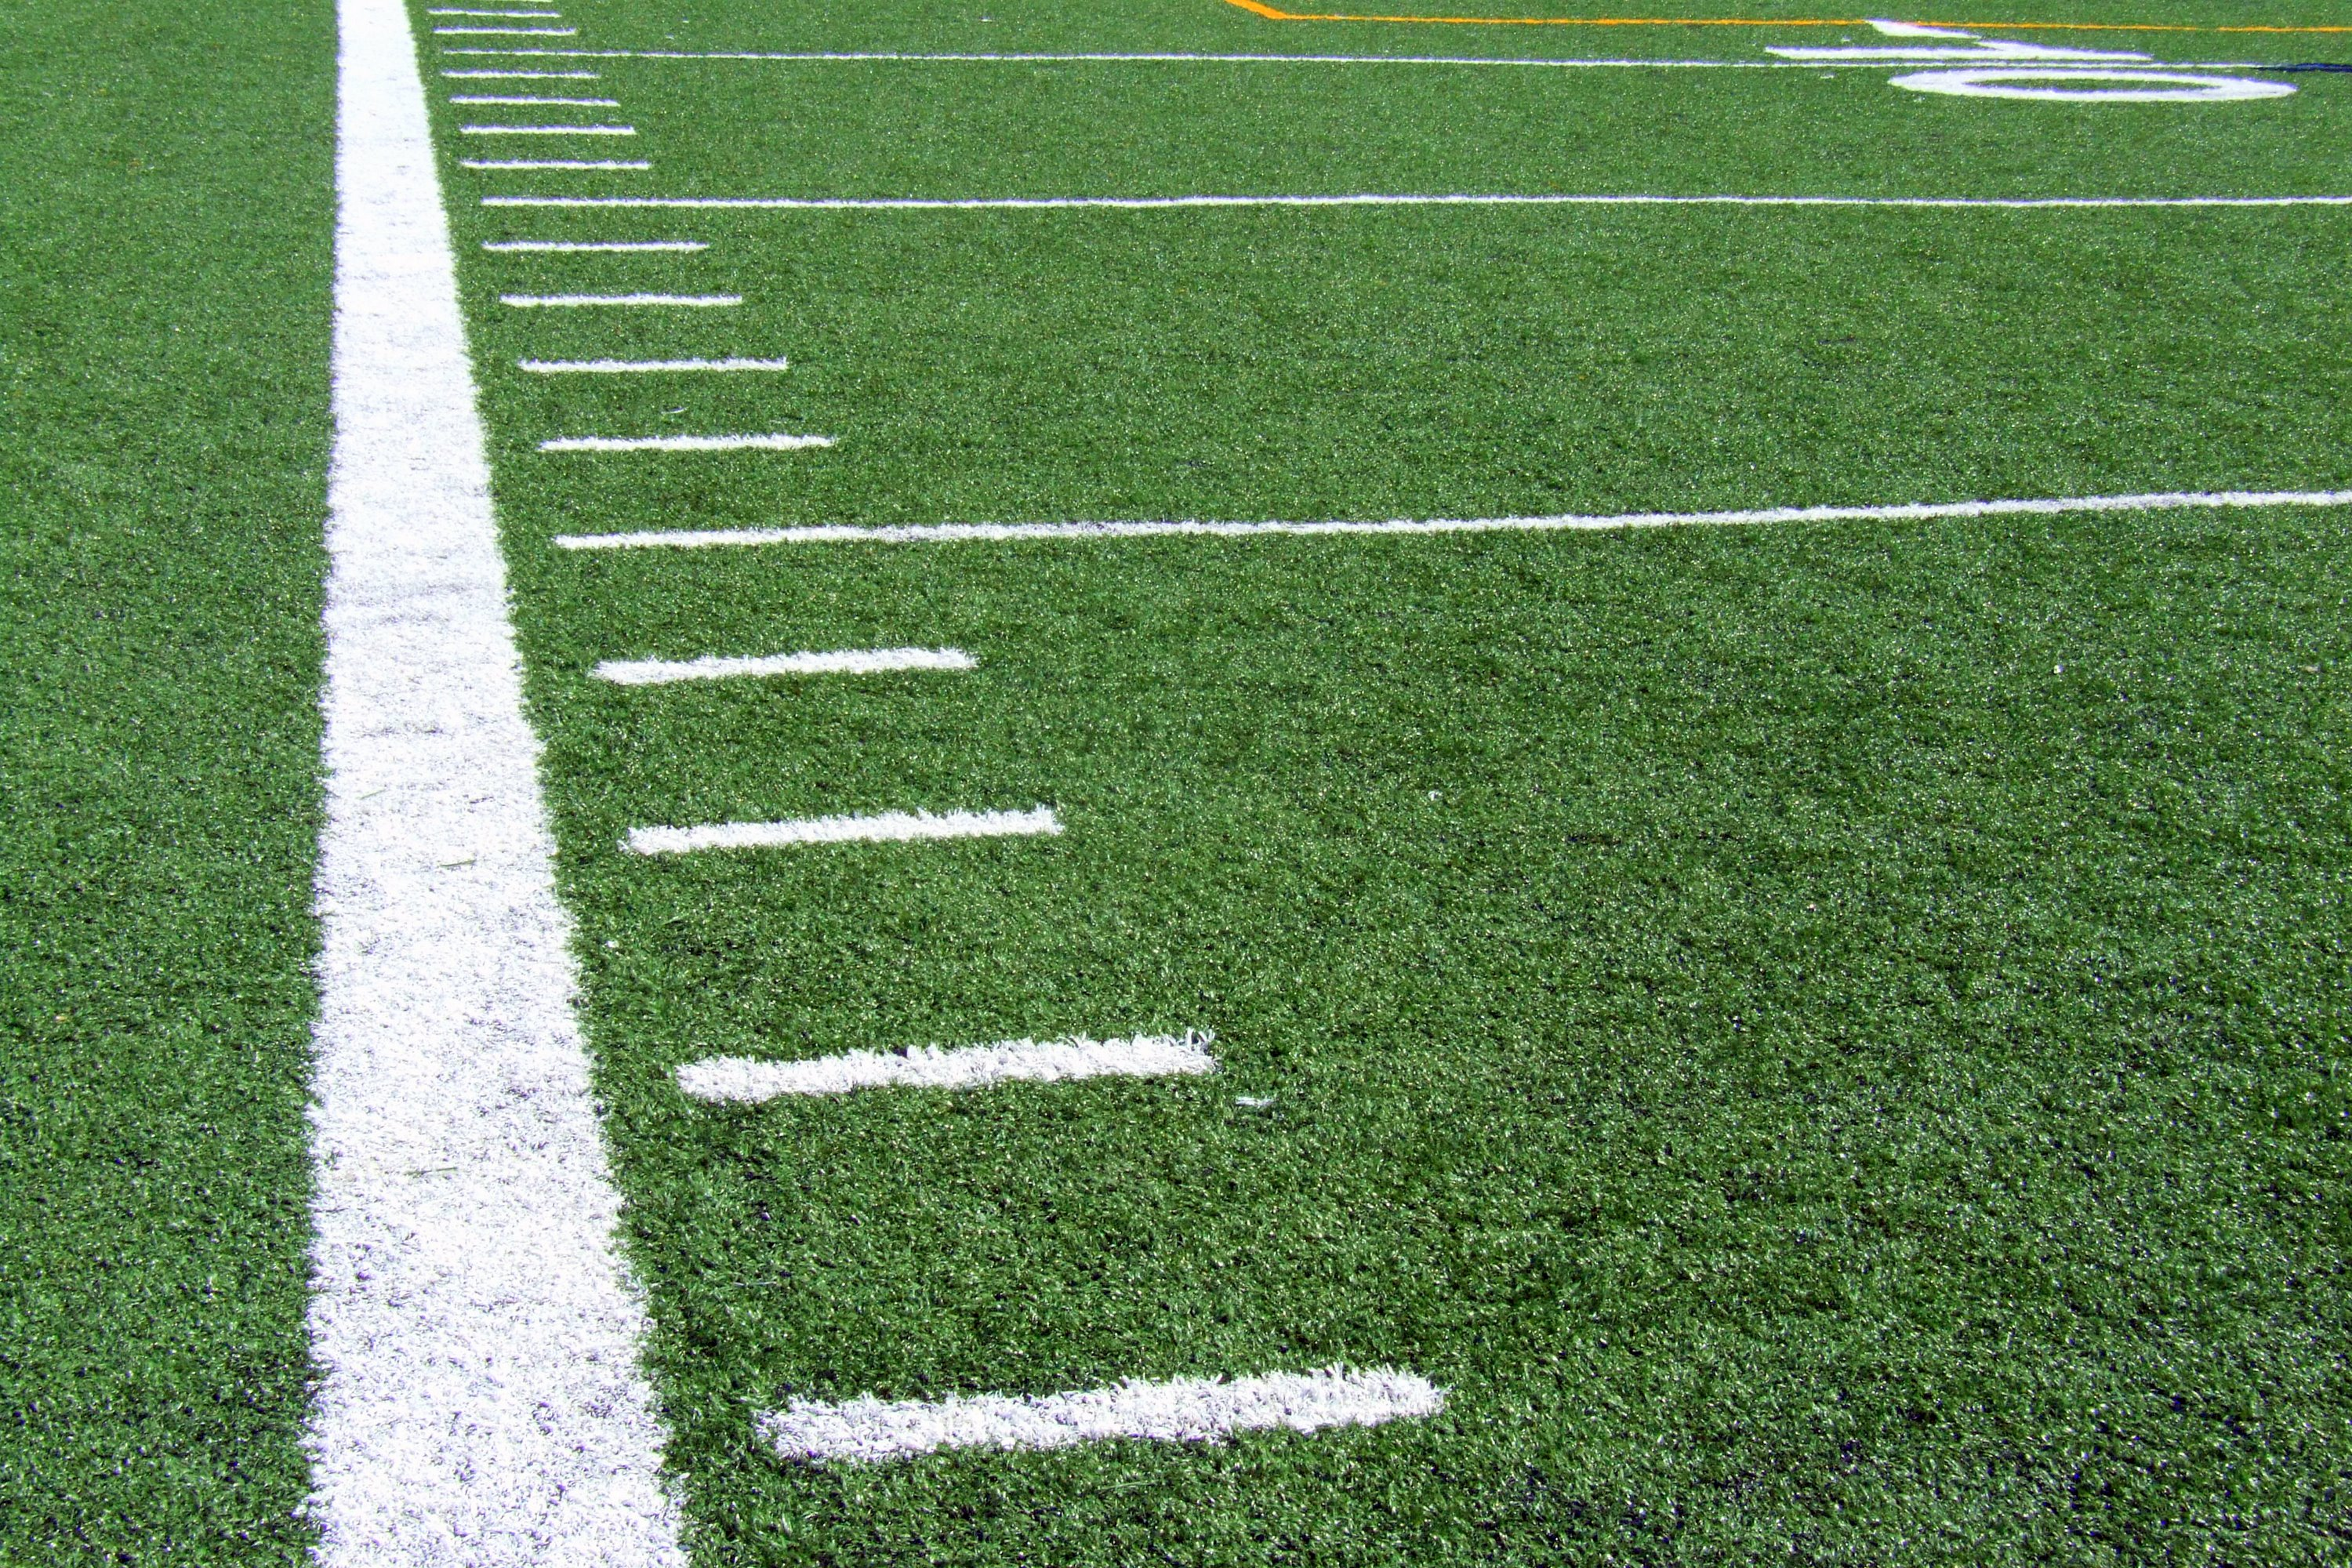 American Football Field Wallpaper Football field 3000x2000